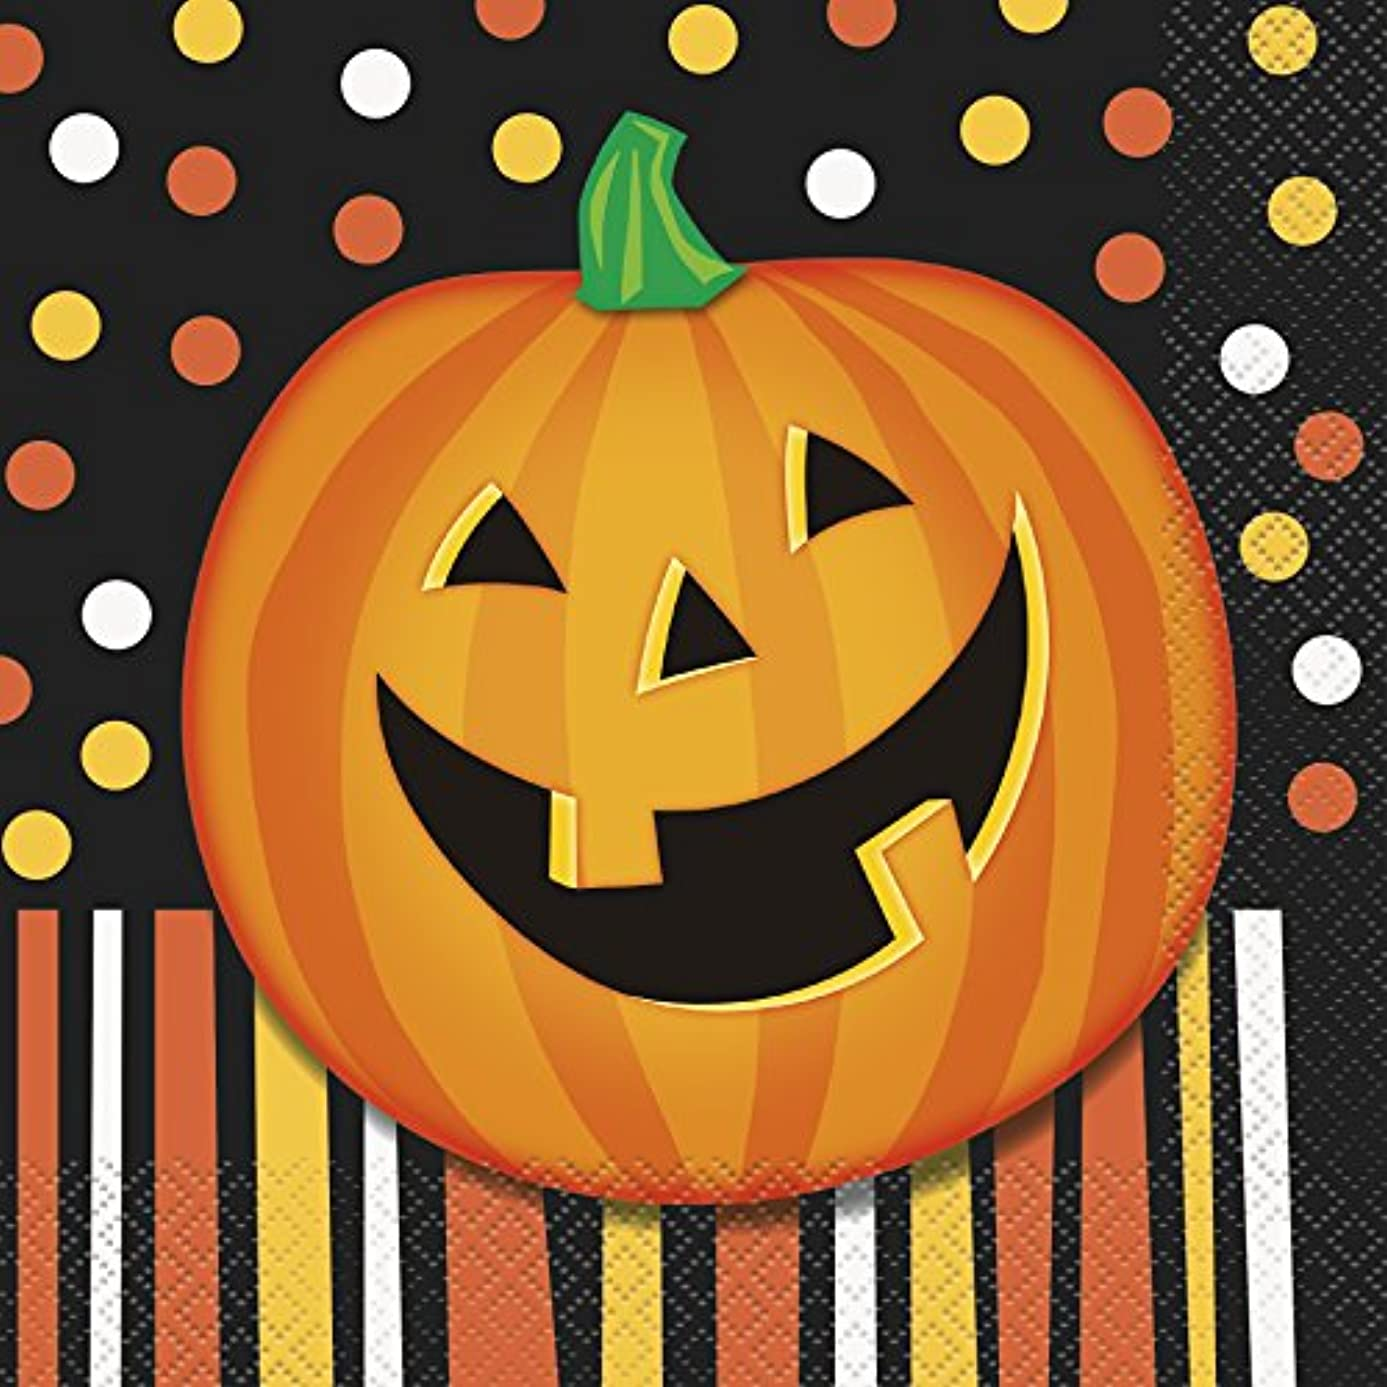 Smiling Pumpkin Halloween Party Napkins, 16ct